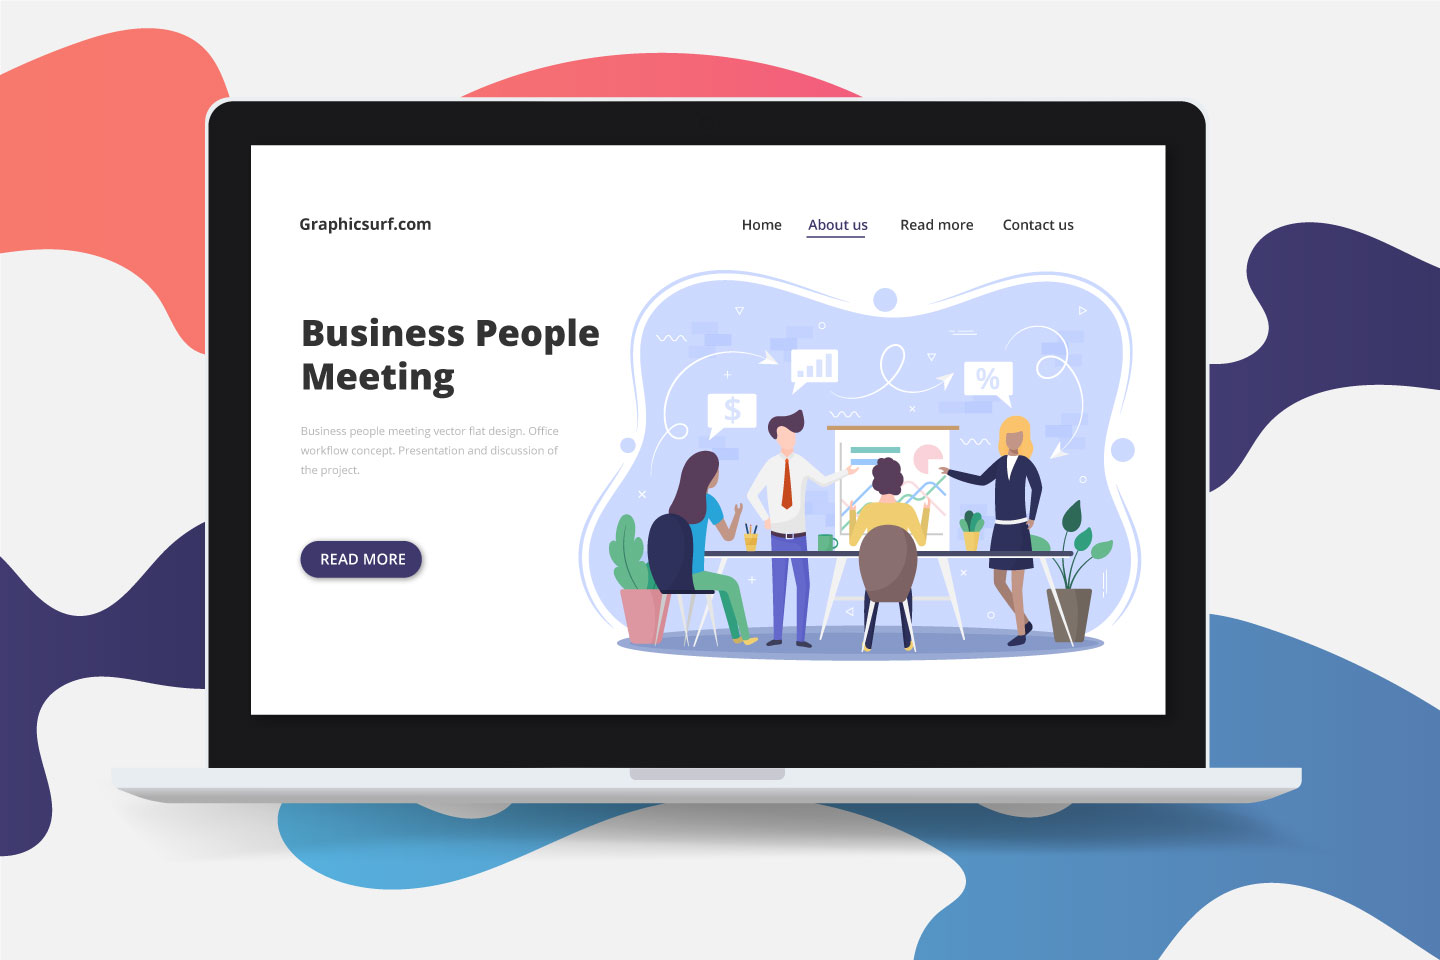 Business People Meeting Vector Flat Design